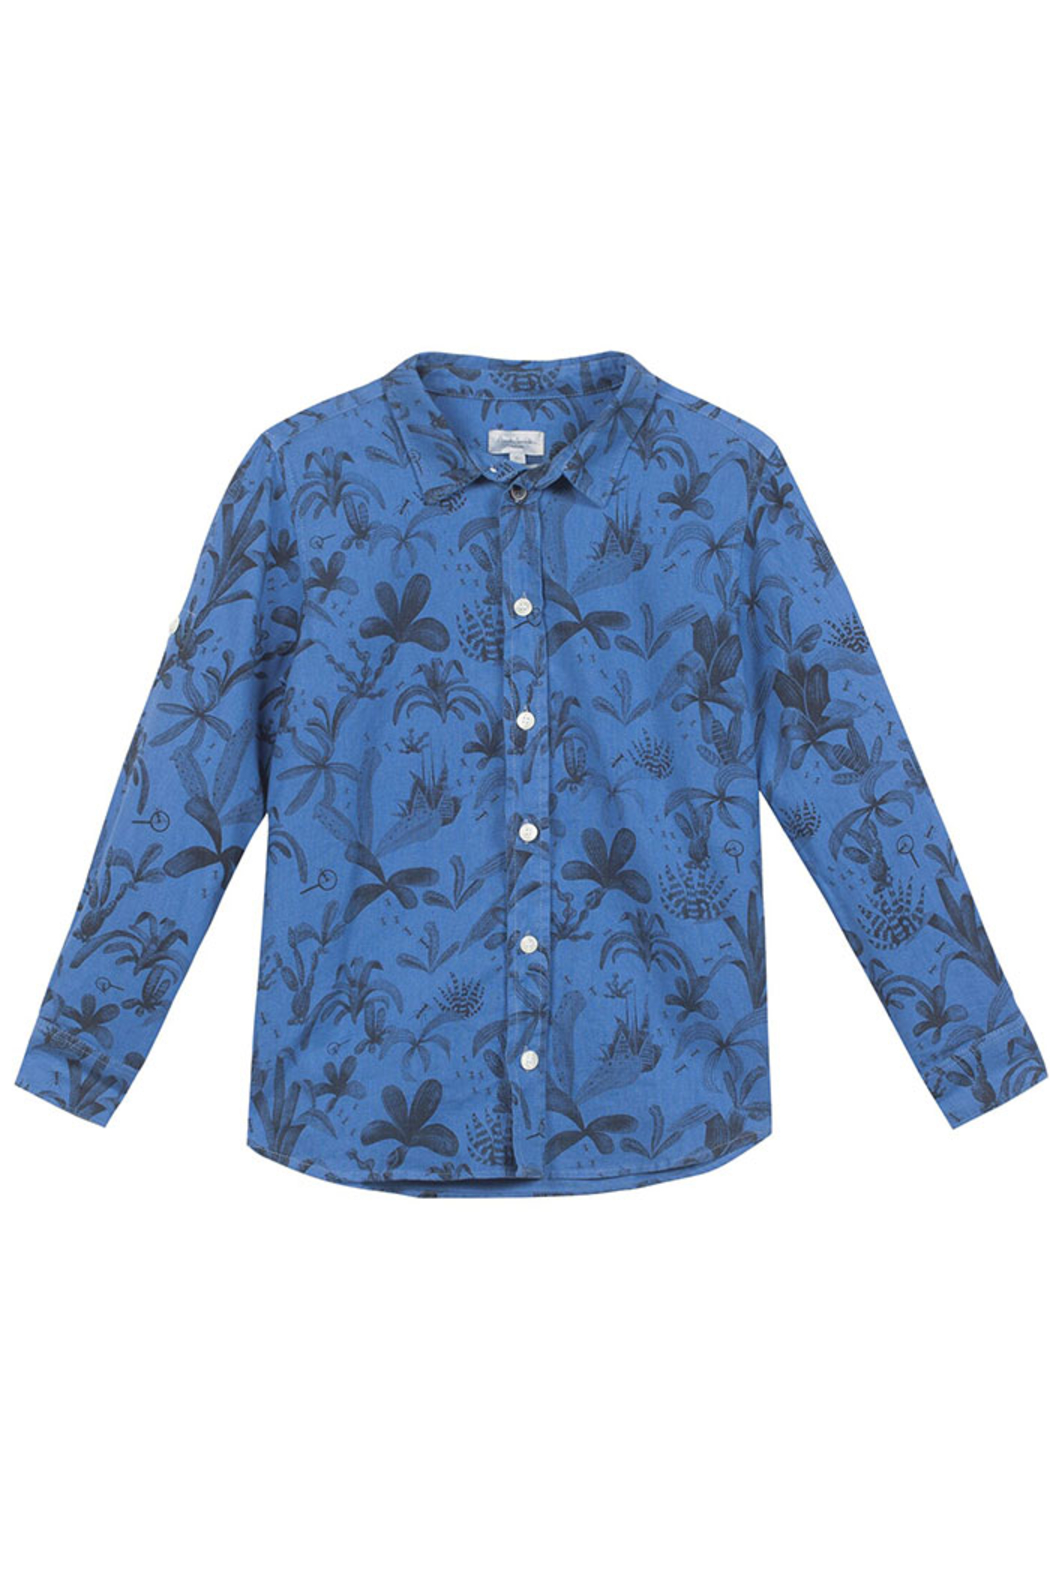 Paul Smith 10-14 Y Hawaiian Shirt - Front Cropped Image